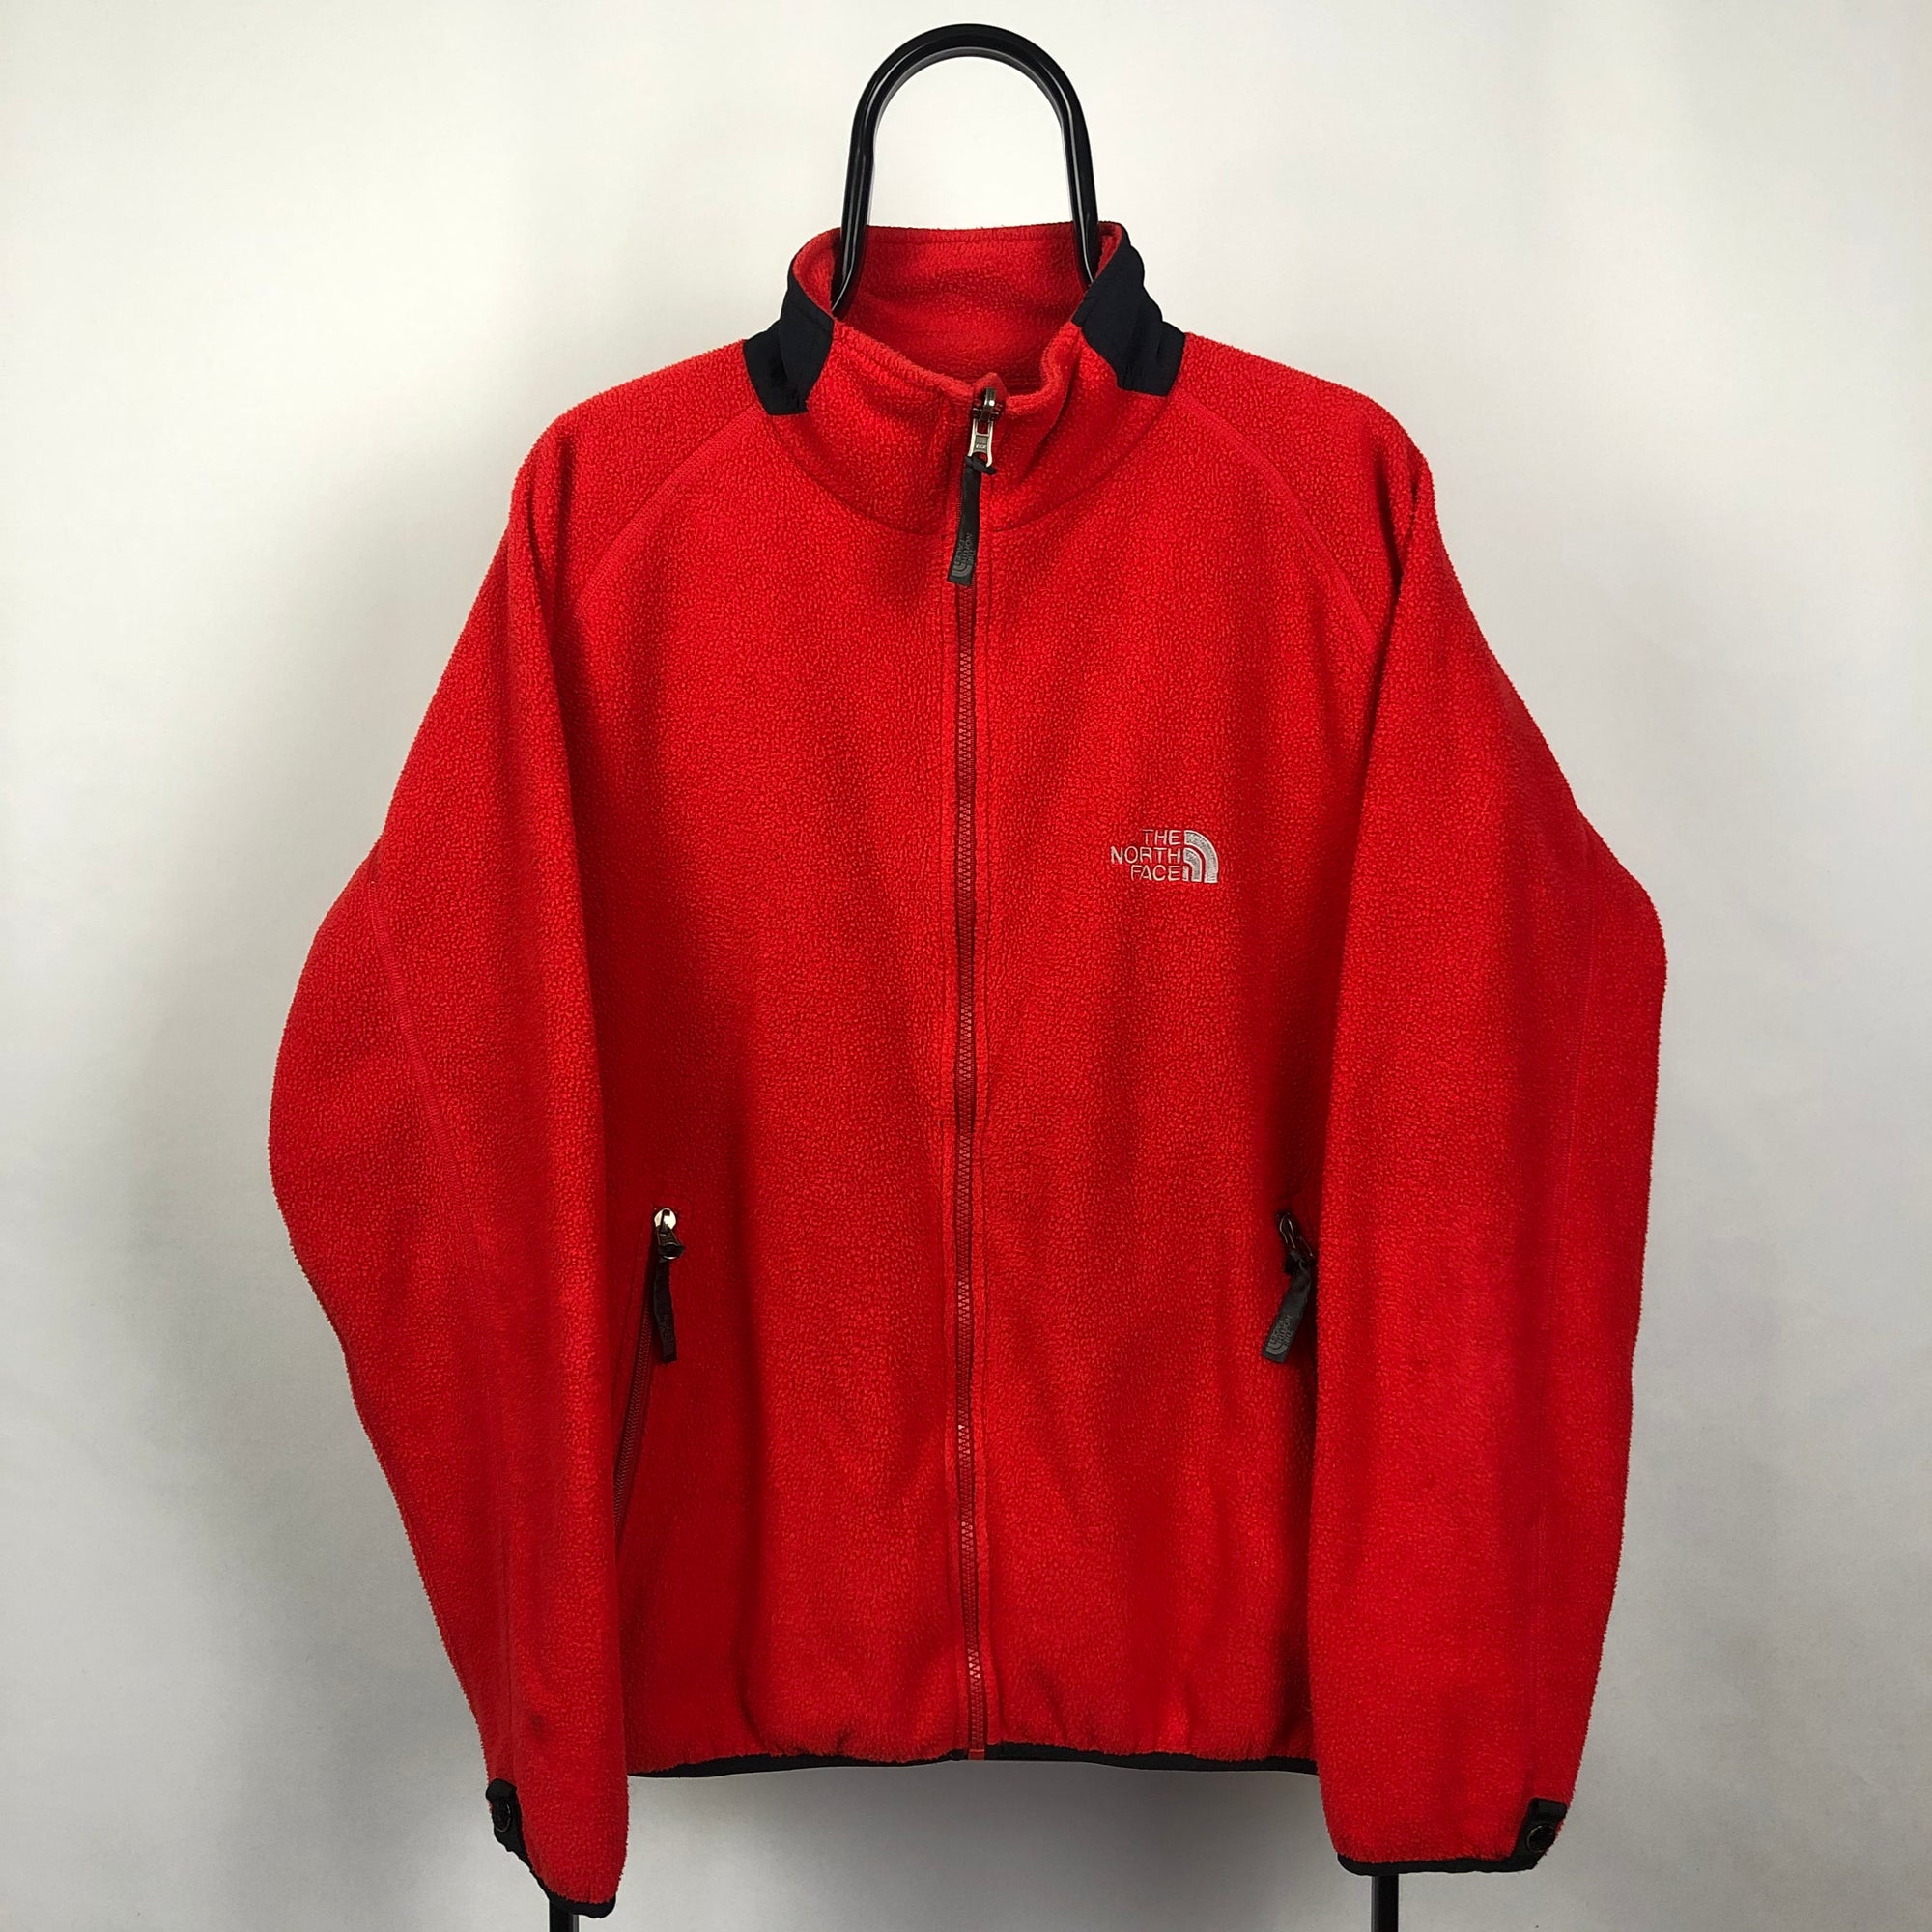 North Face Fleece in Red - Men's Large/Women's XL